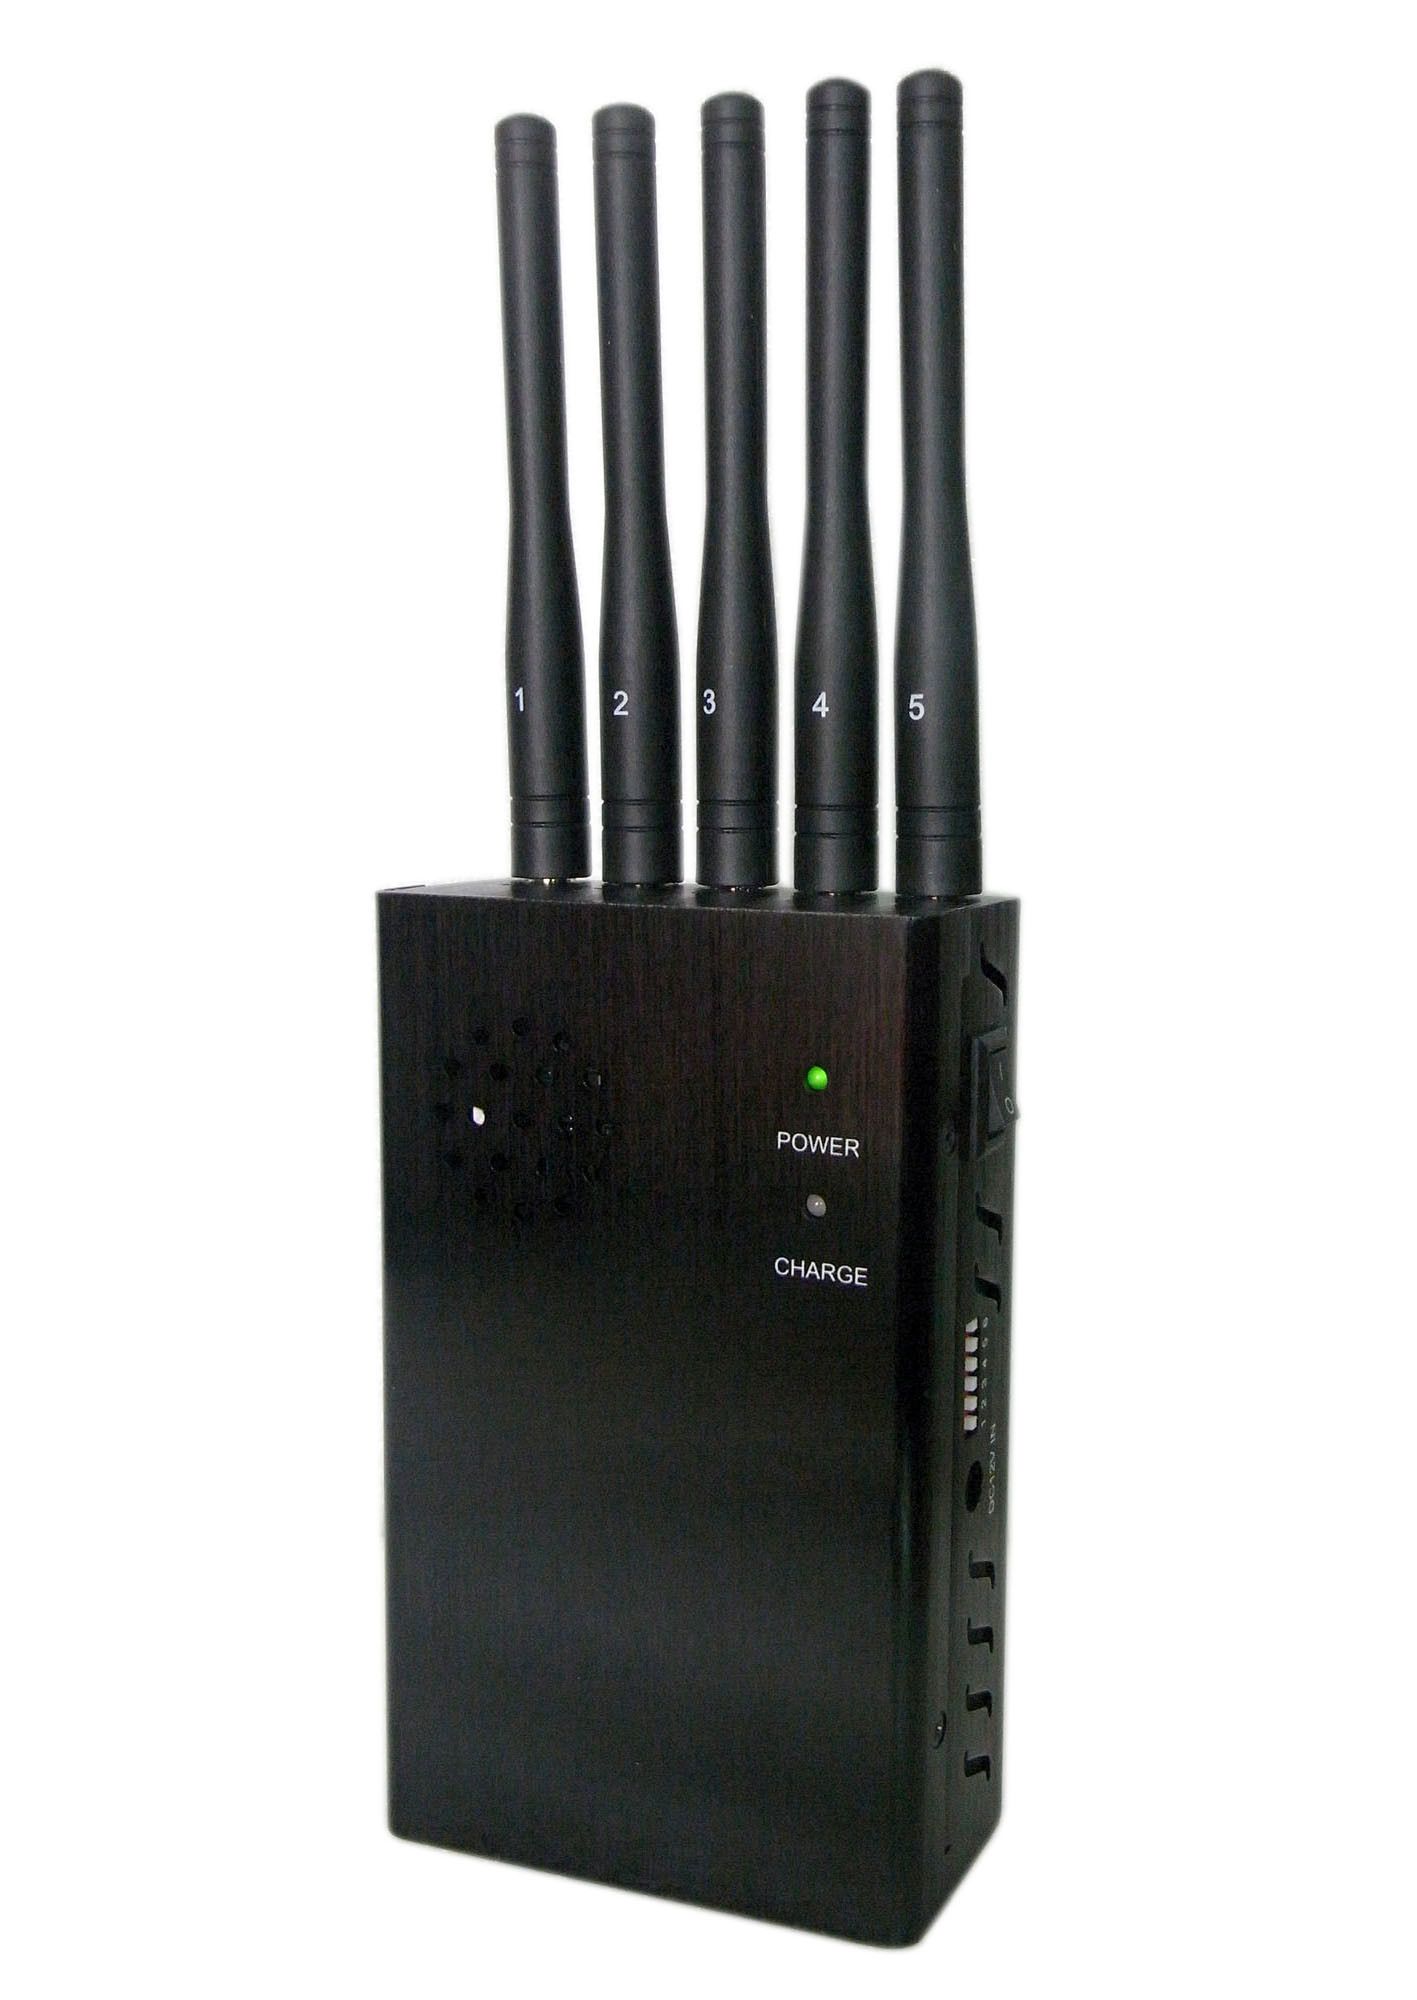 phone jammer fcc fm - China Portable 5 Antennas for All Cellular, GPS, Lojack, Alarm Jammer System, Portable Five Antenna for All Signal Jammer System, Cell Phone Jammers - China 5 Band Signal Blockers, Five Antennas Jammers